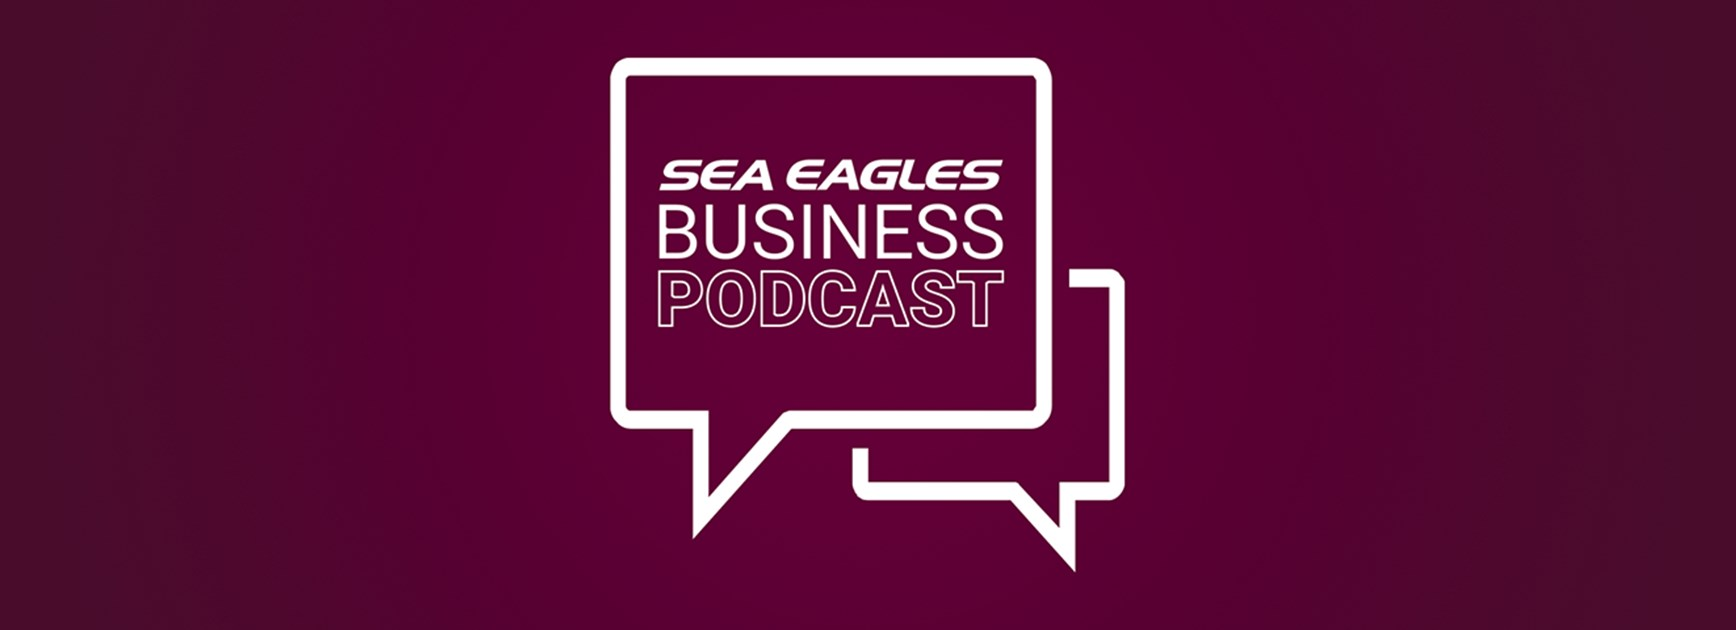 Business Episode 3: Rick Penn